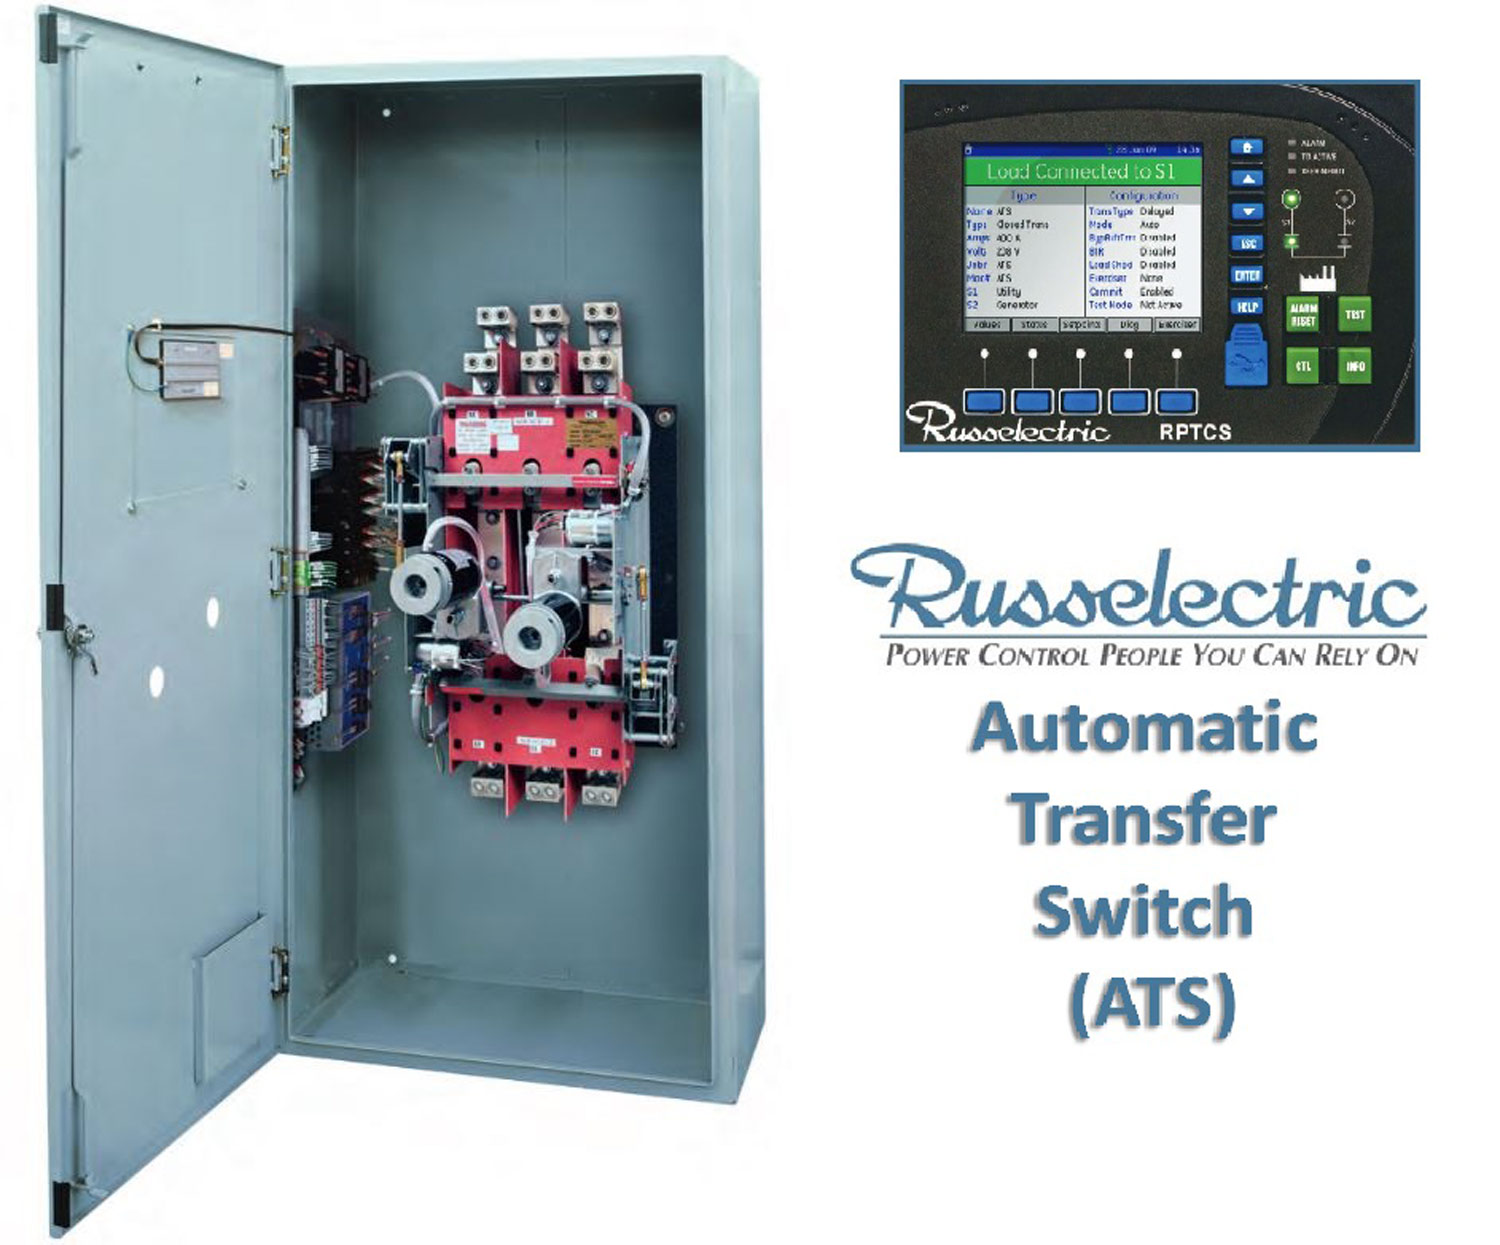 Russelectric Automatic Transfer Switch ATS